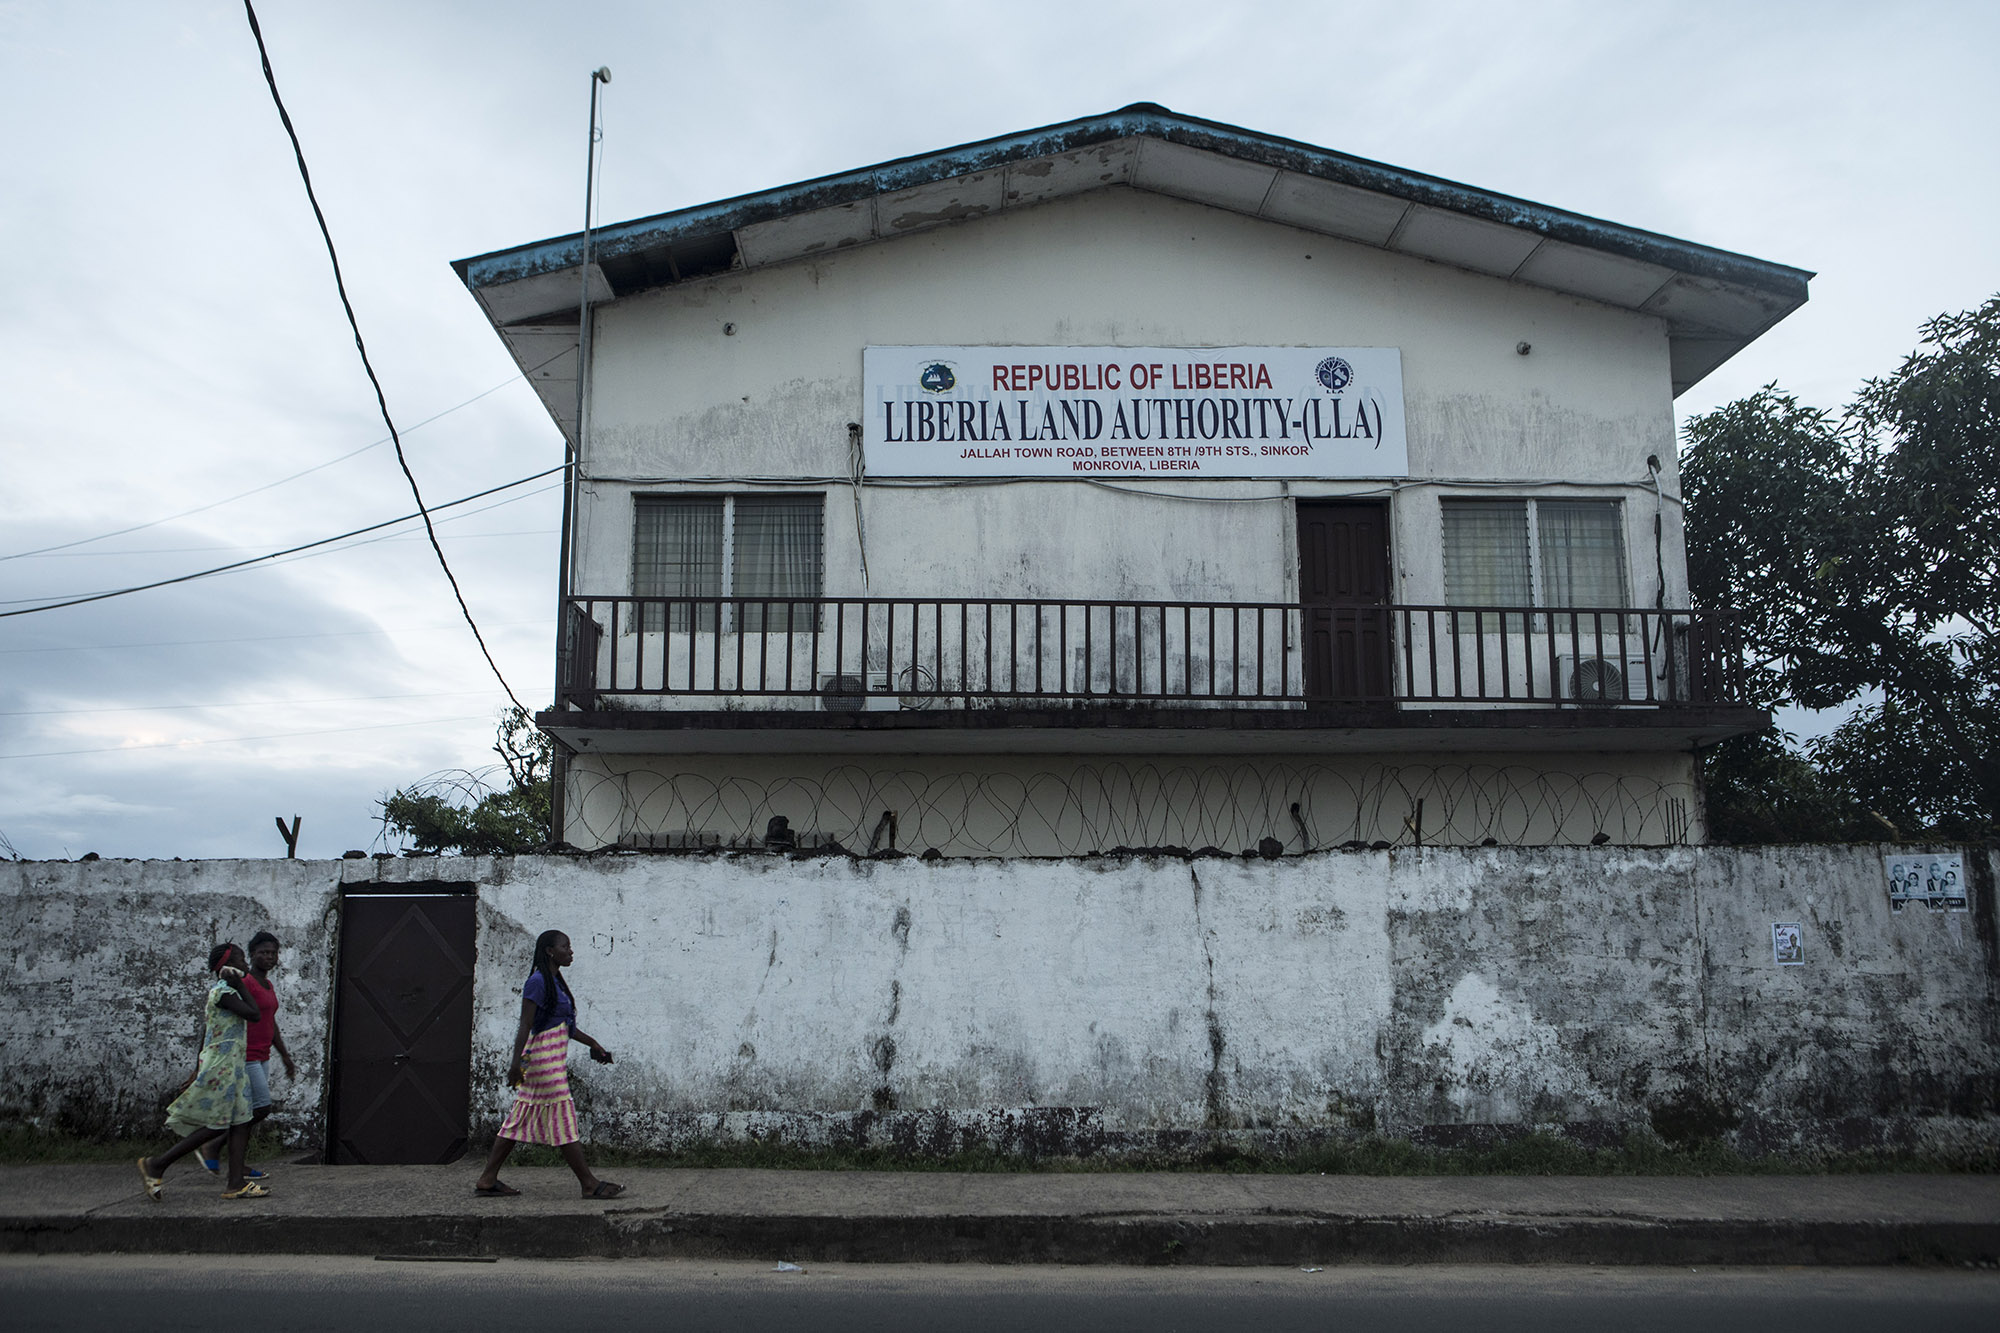 The Liberia Land Authority building located in Monrovia, Liberia.Photo by Sarah Grile.